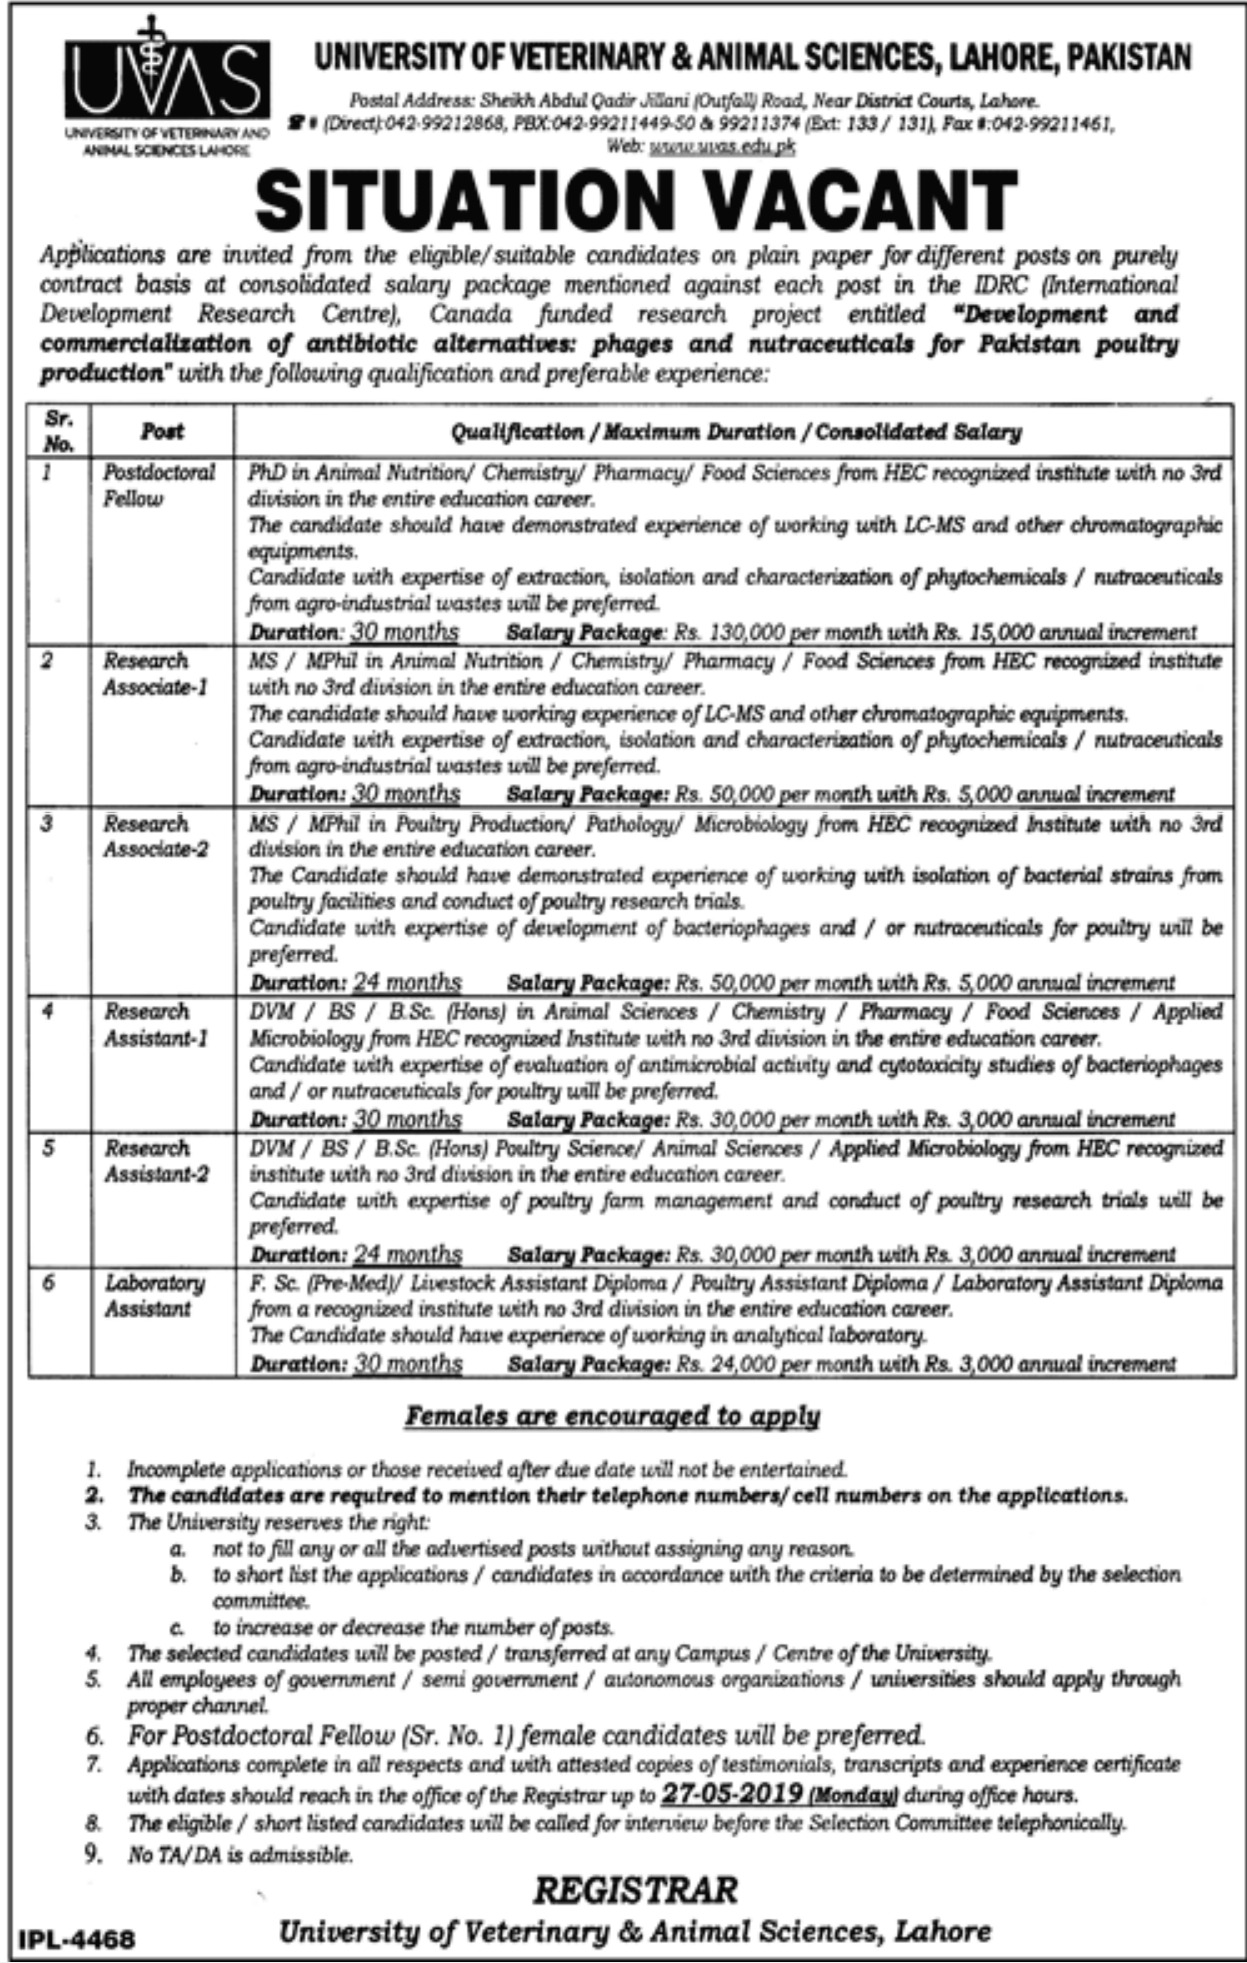 University of Veterinary & Animal Sciences UVAS Lahore Jobs 2019